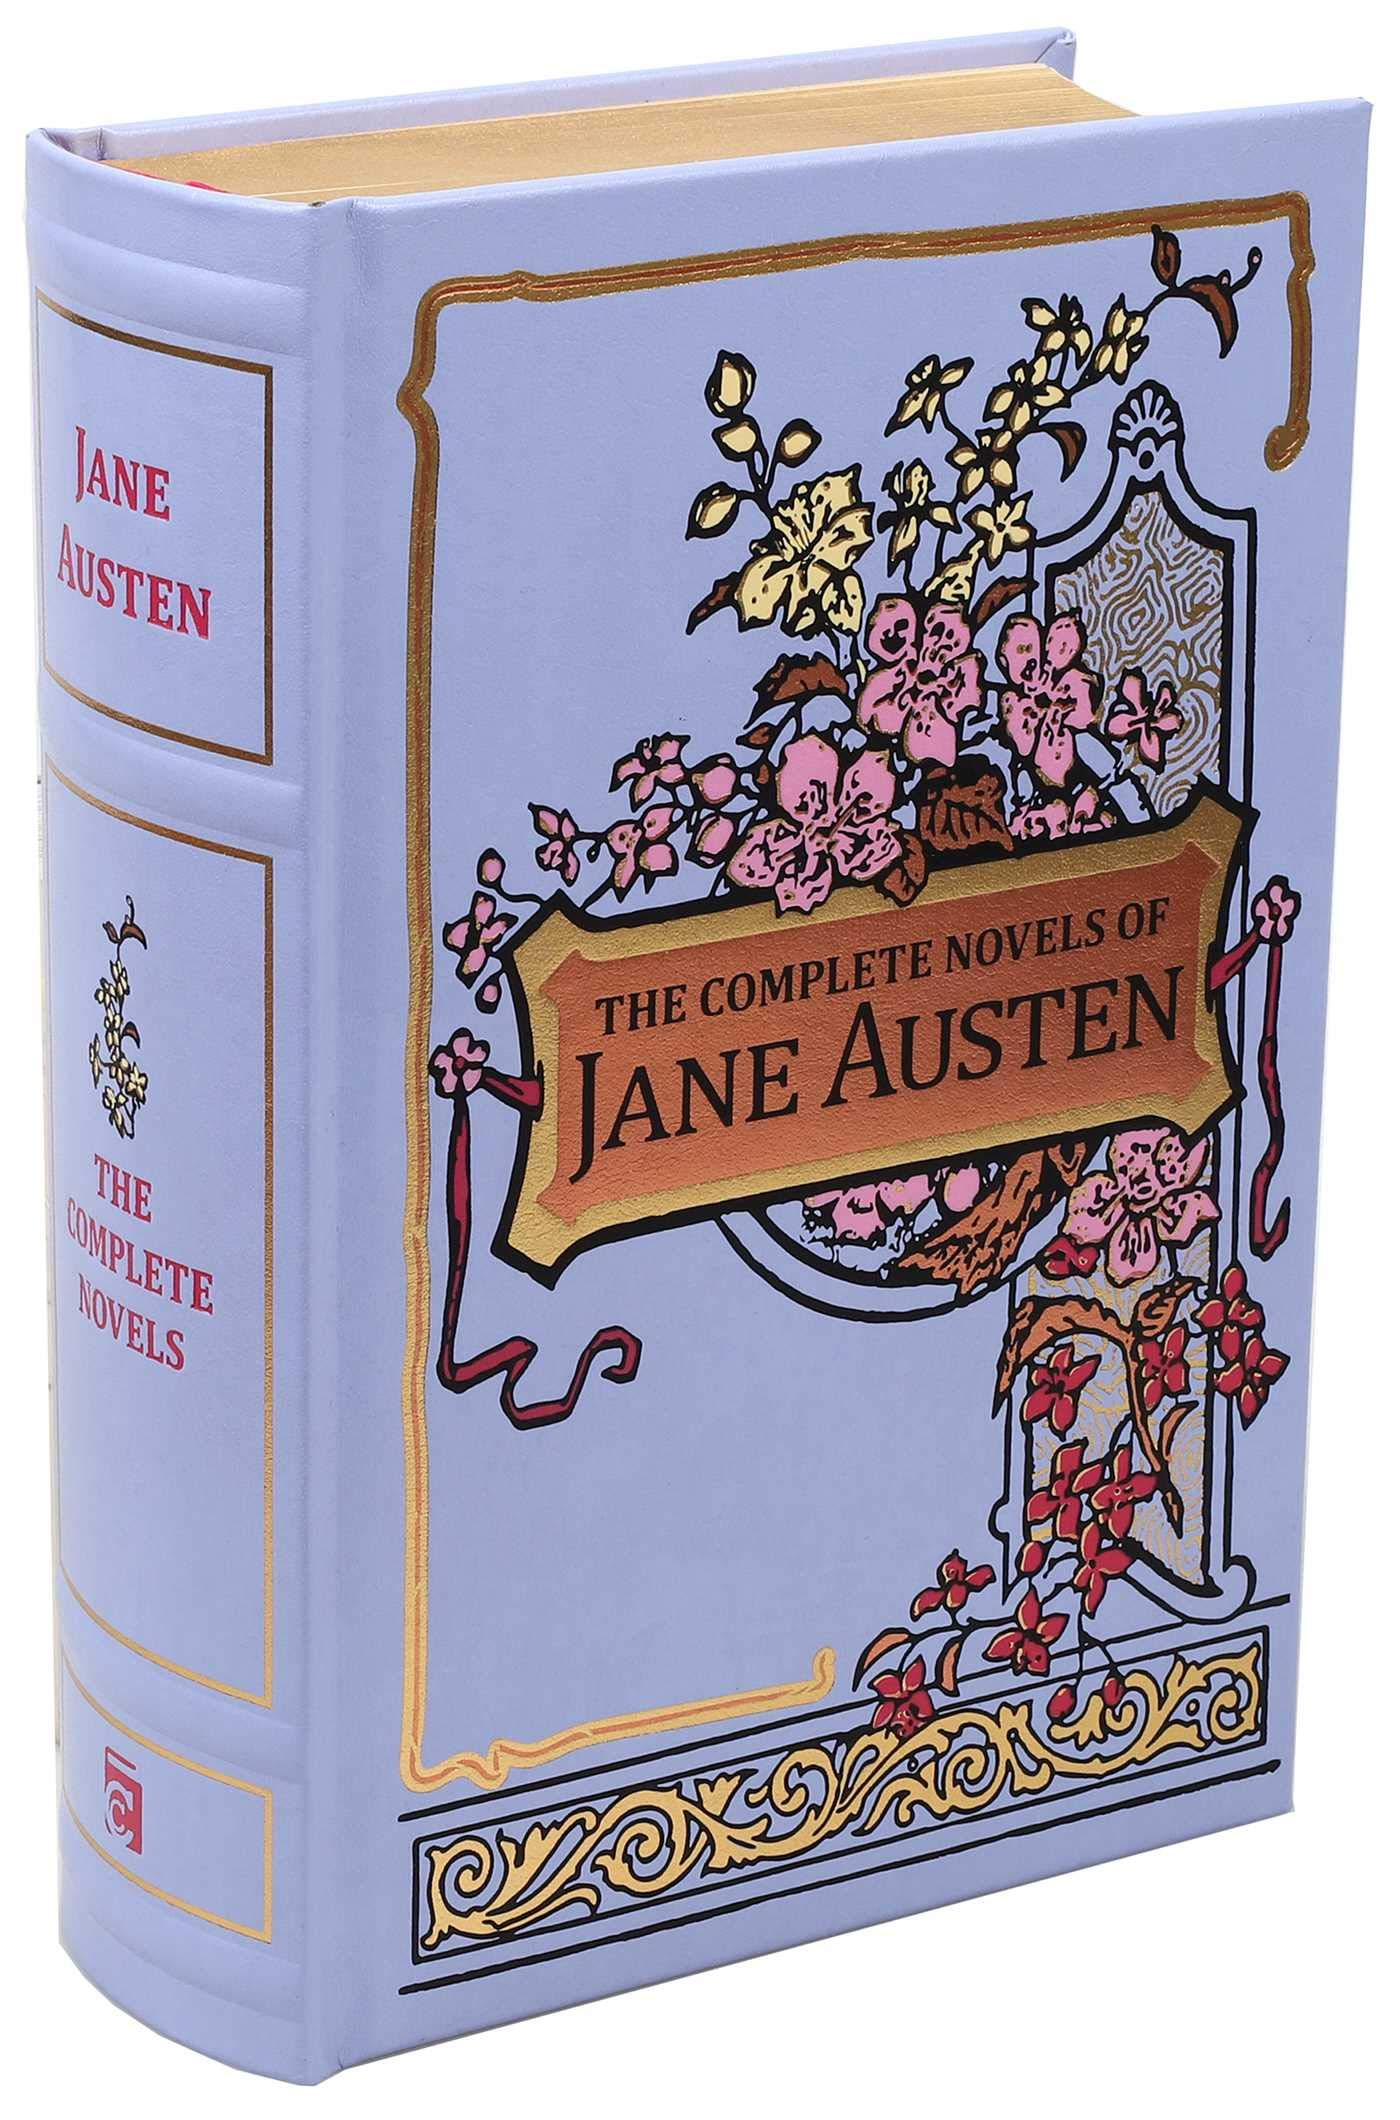 The Complete Novels of Jane Austen (Leather-bound Classics)